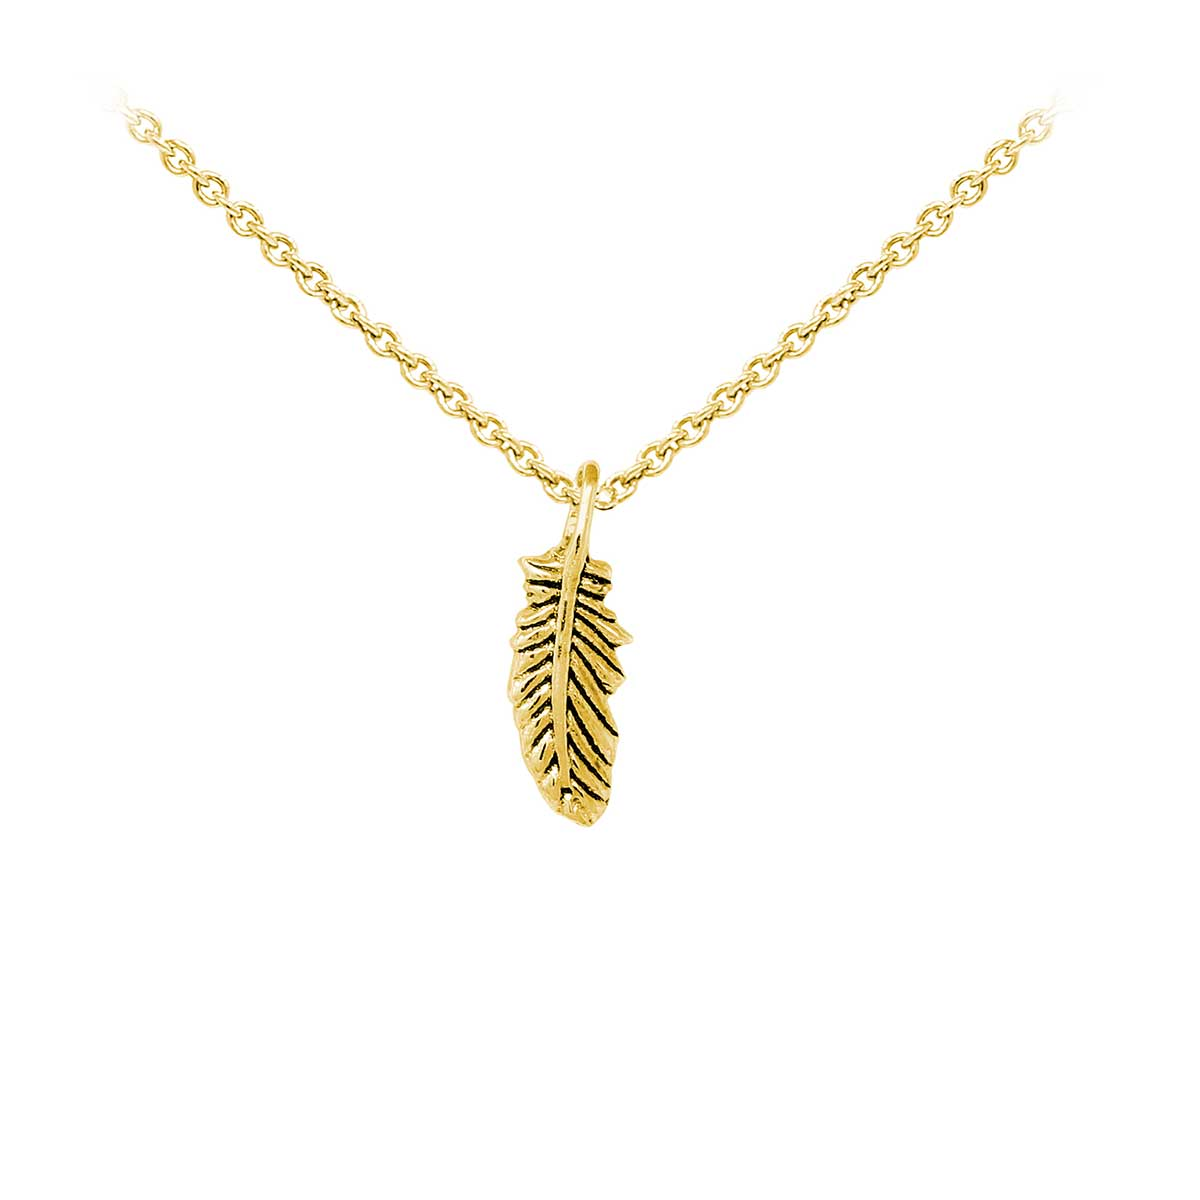 Wind & Fire Feather Dainty Necklace: Precious Accents, Ltd.